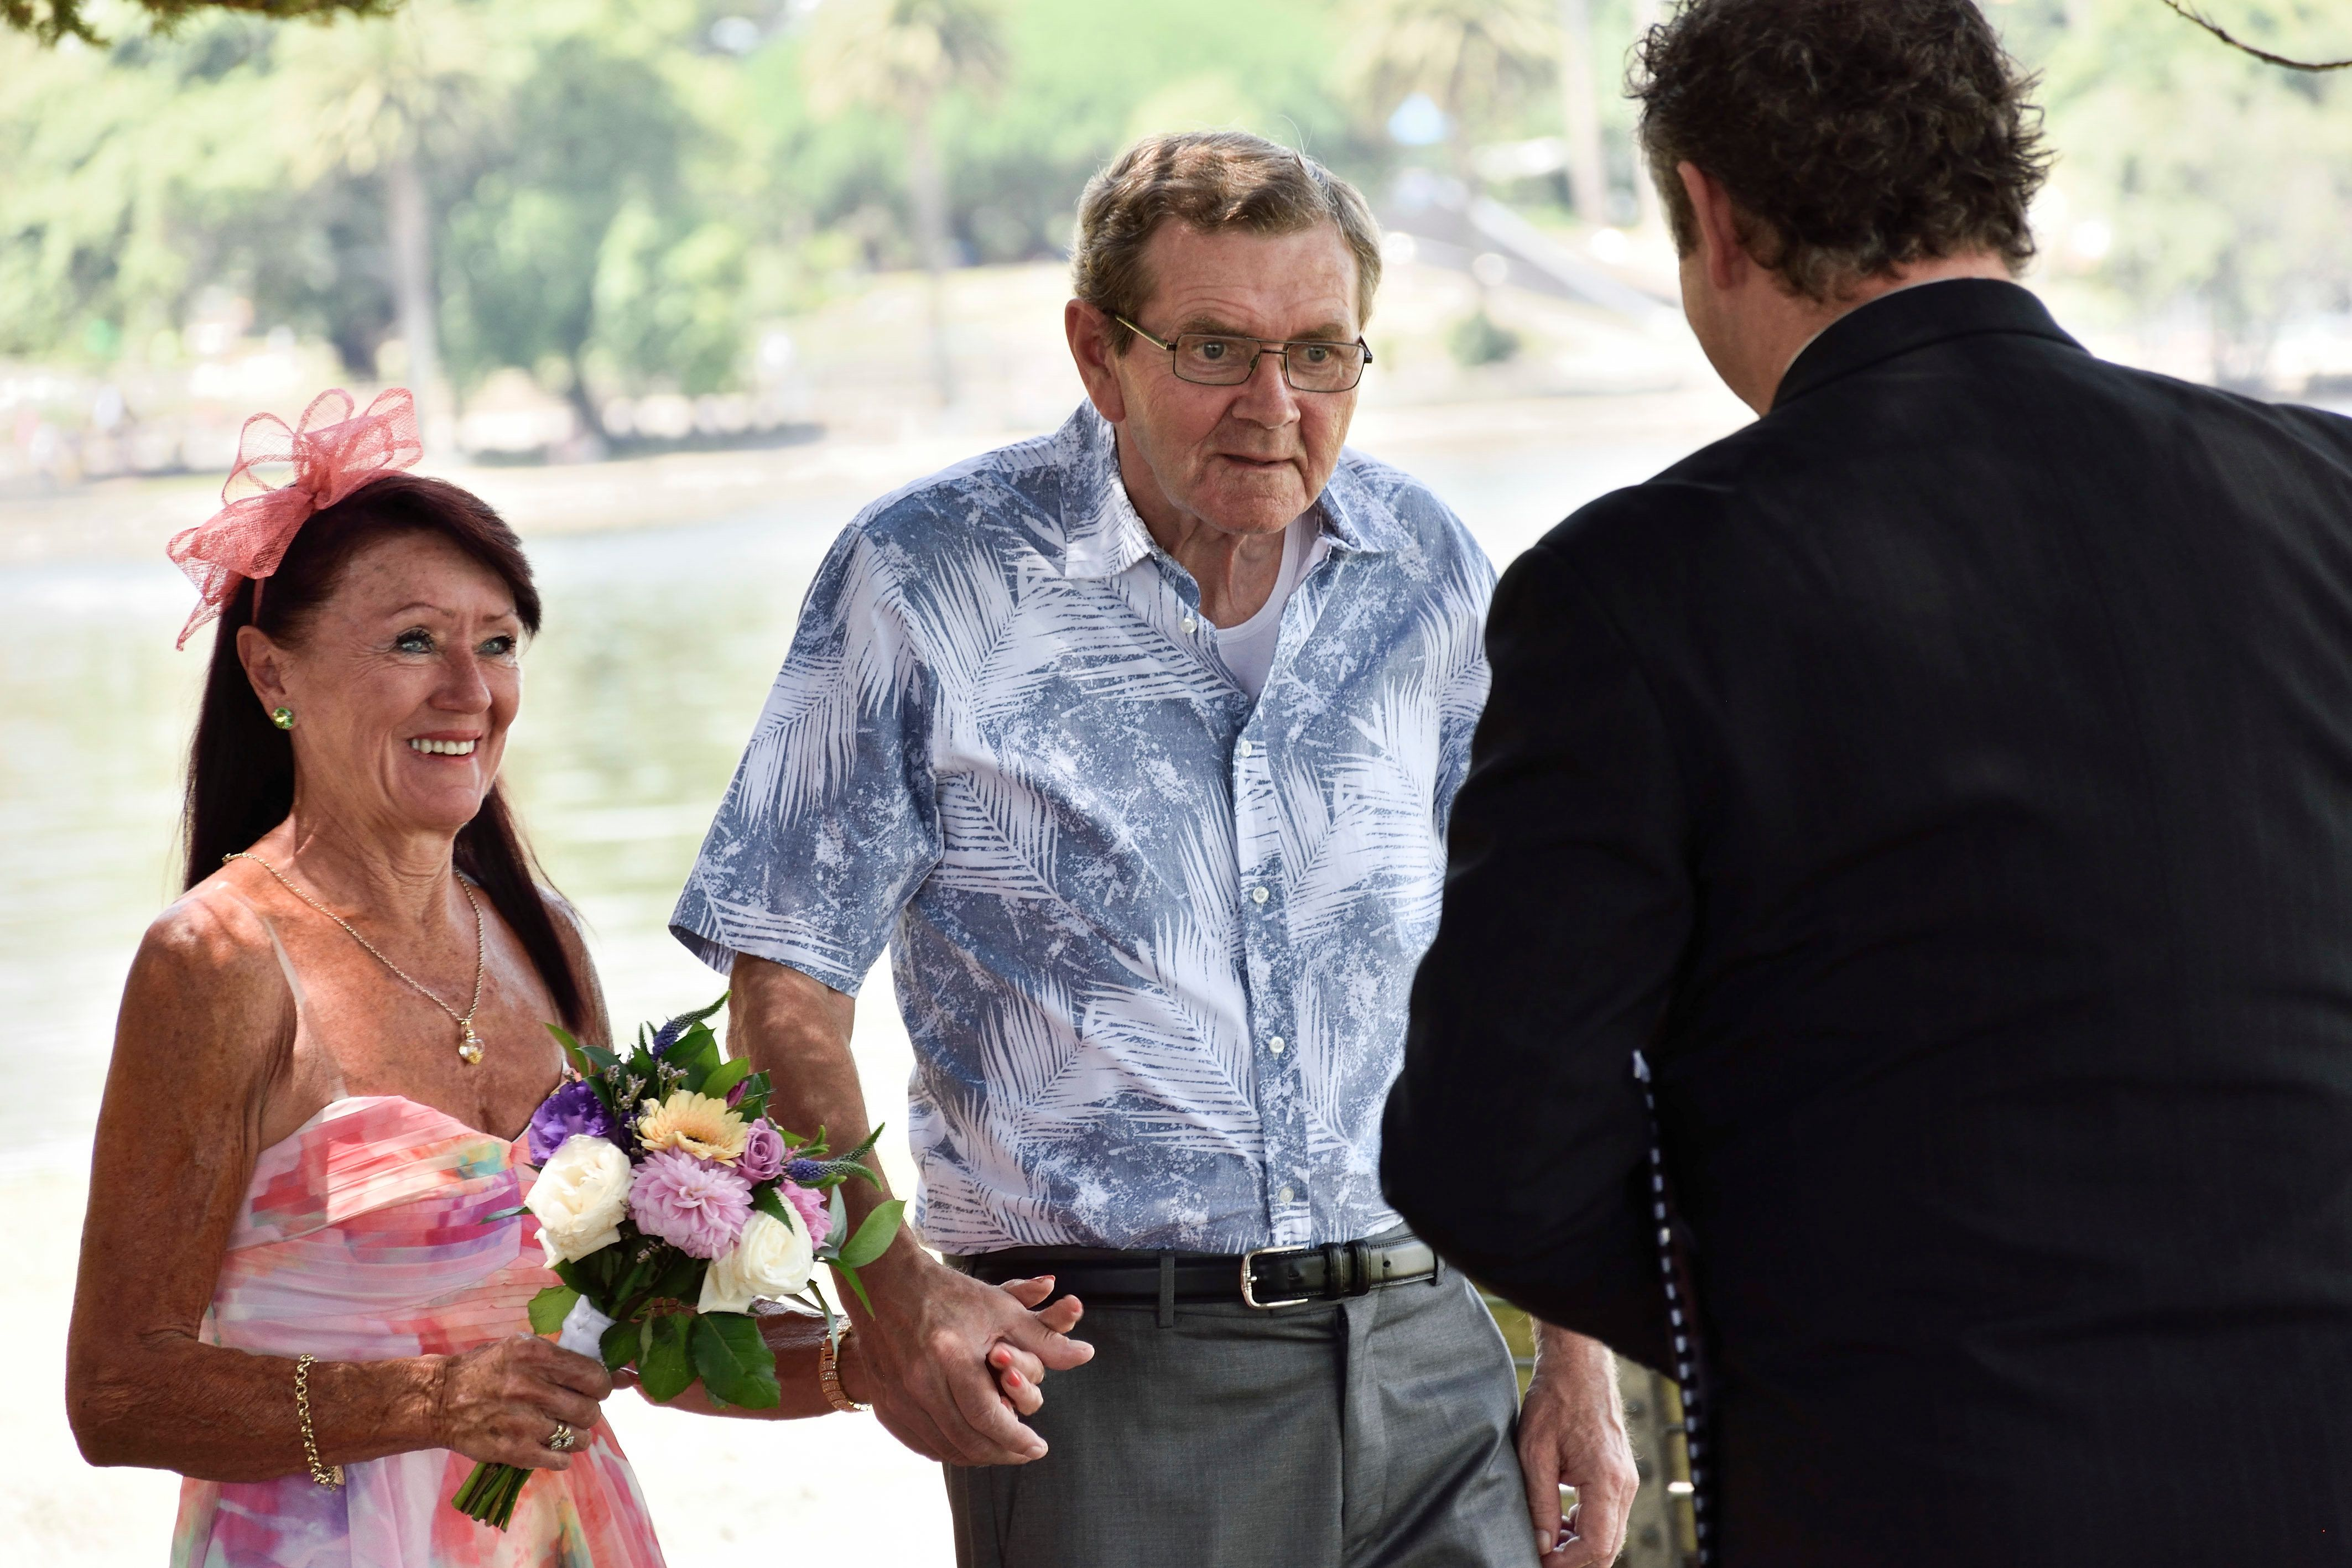 Couple Renews Wedding Vows After Husband With Alzheimer's Disease Forgets He's